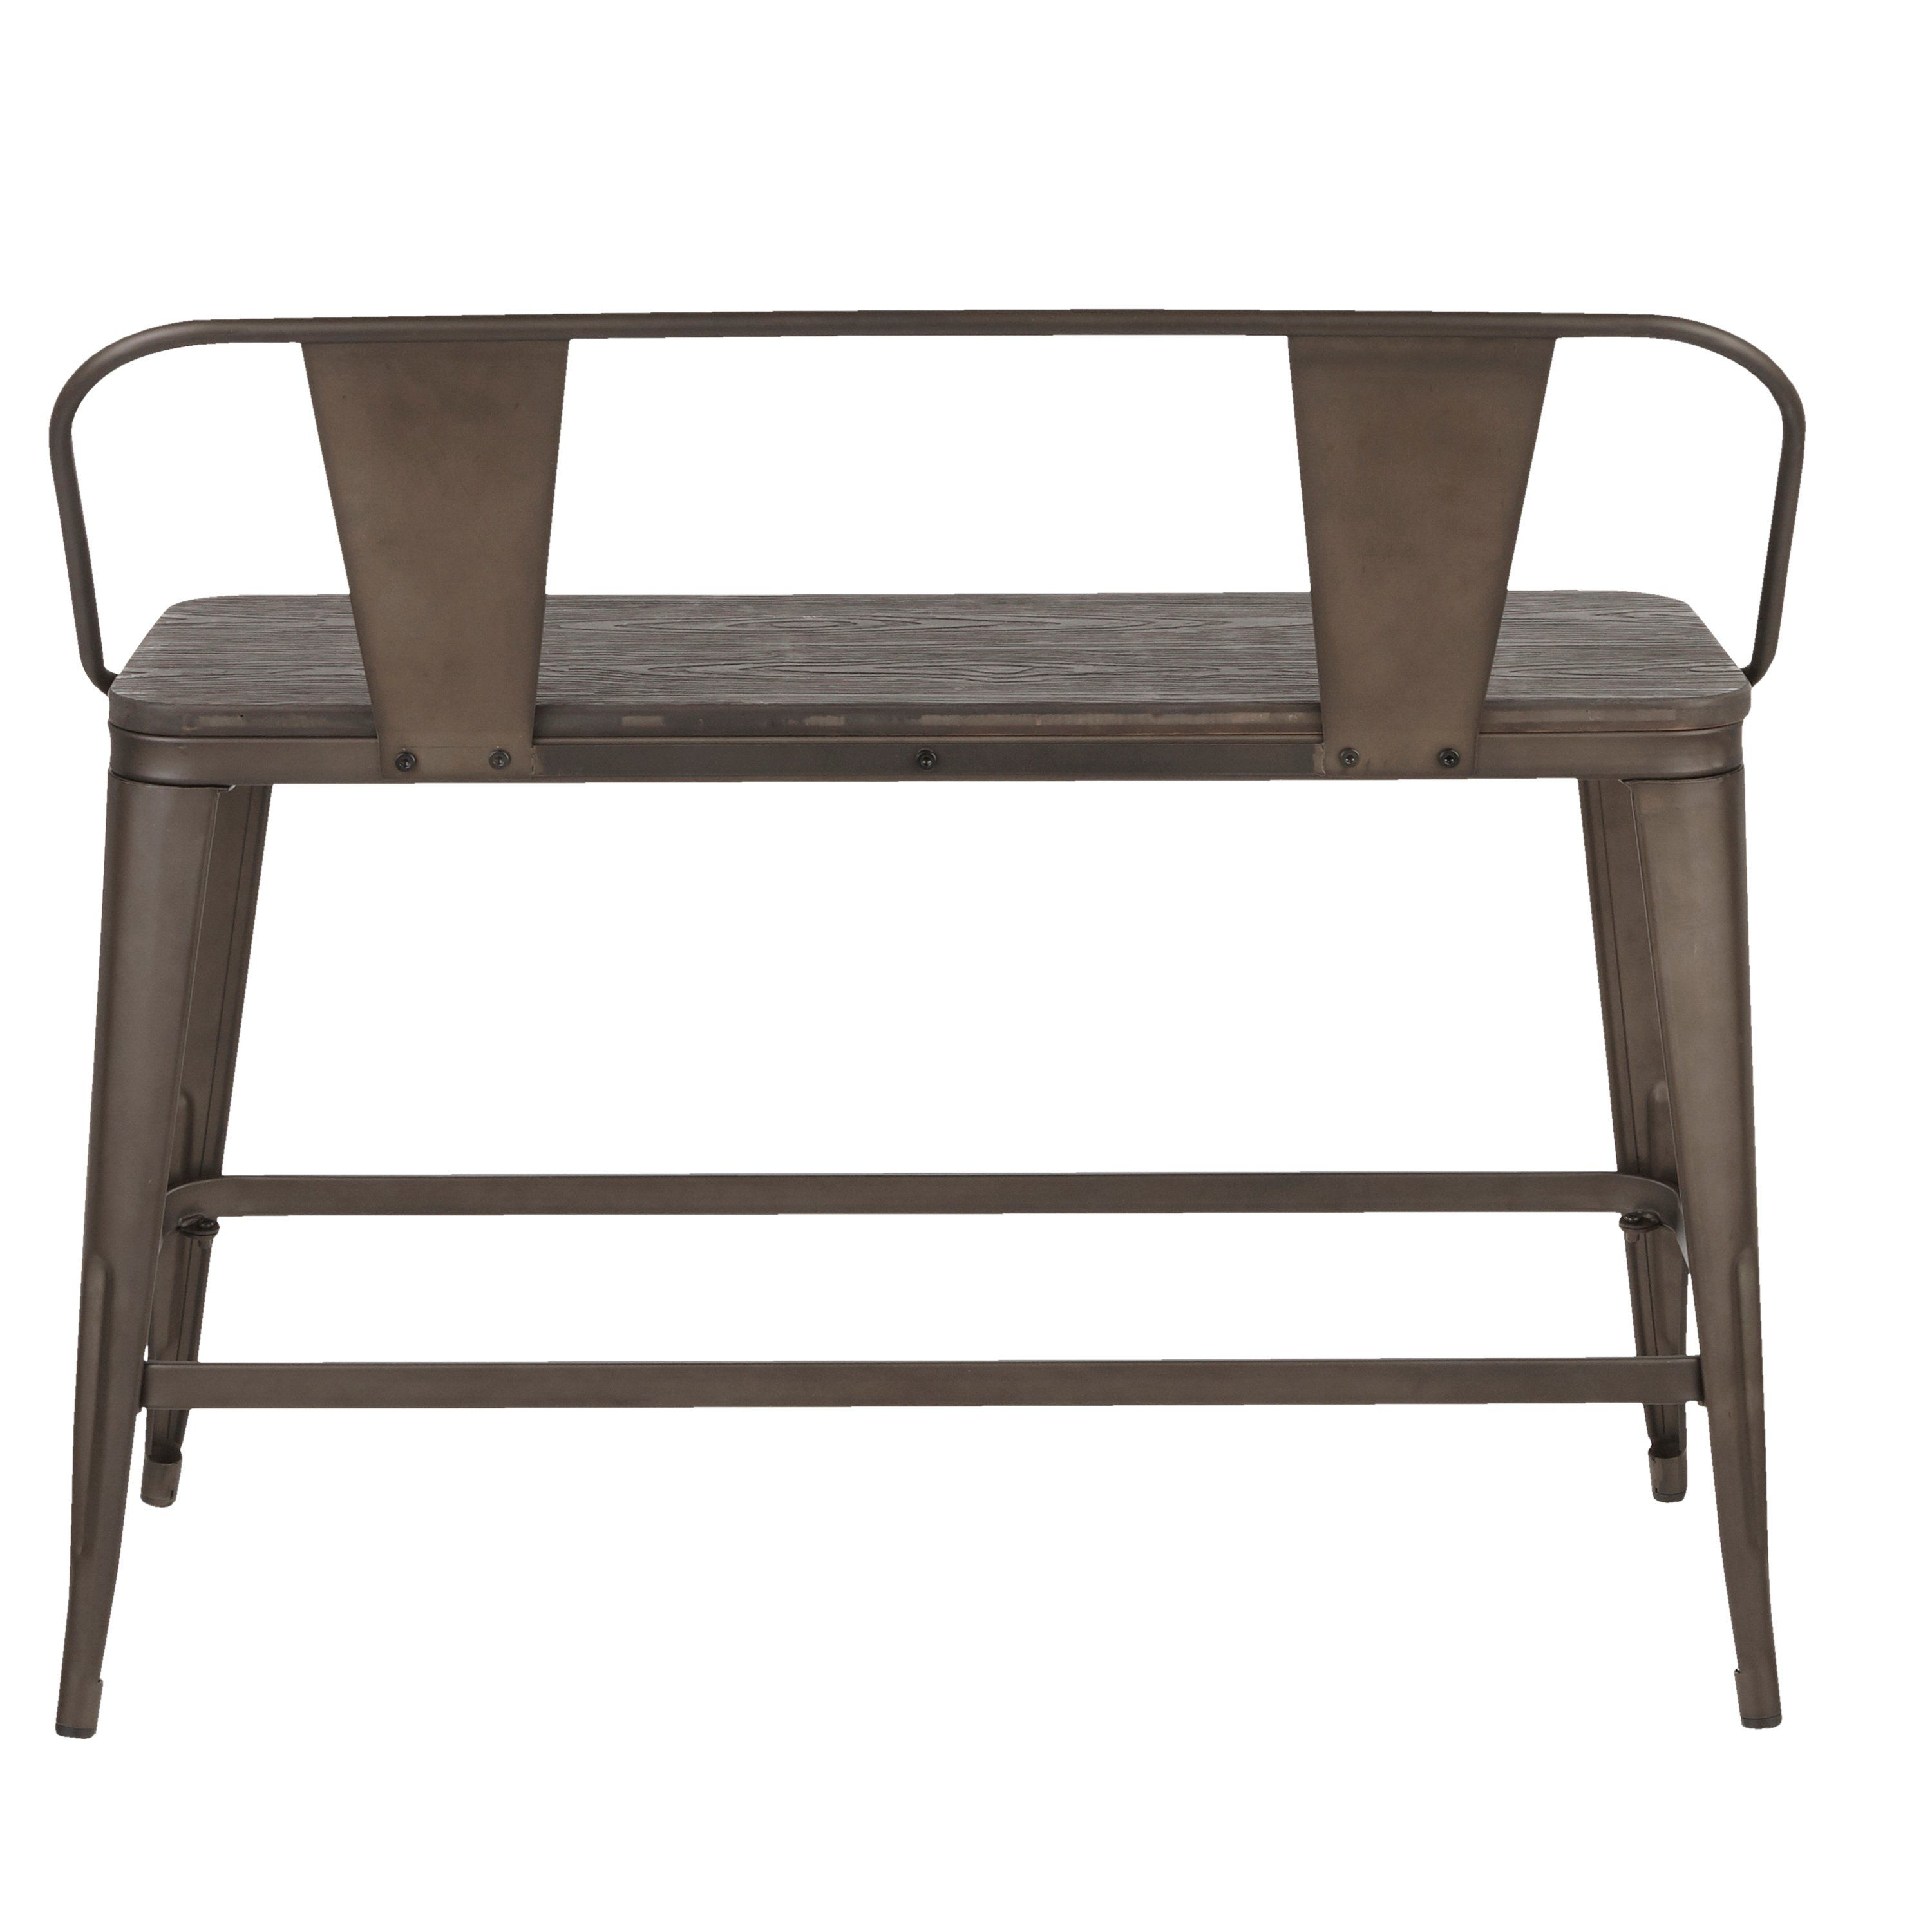 Farmhouse antique and brown metal counter height bench